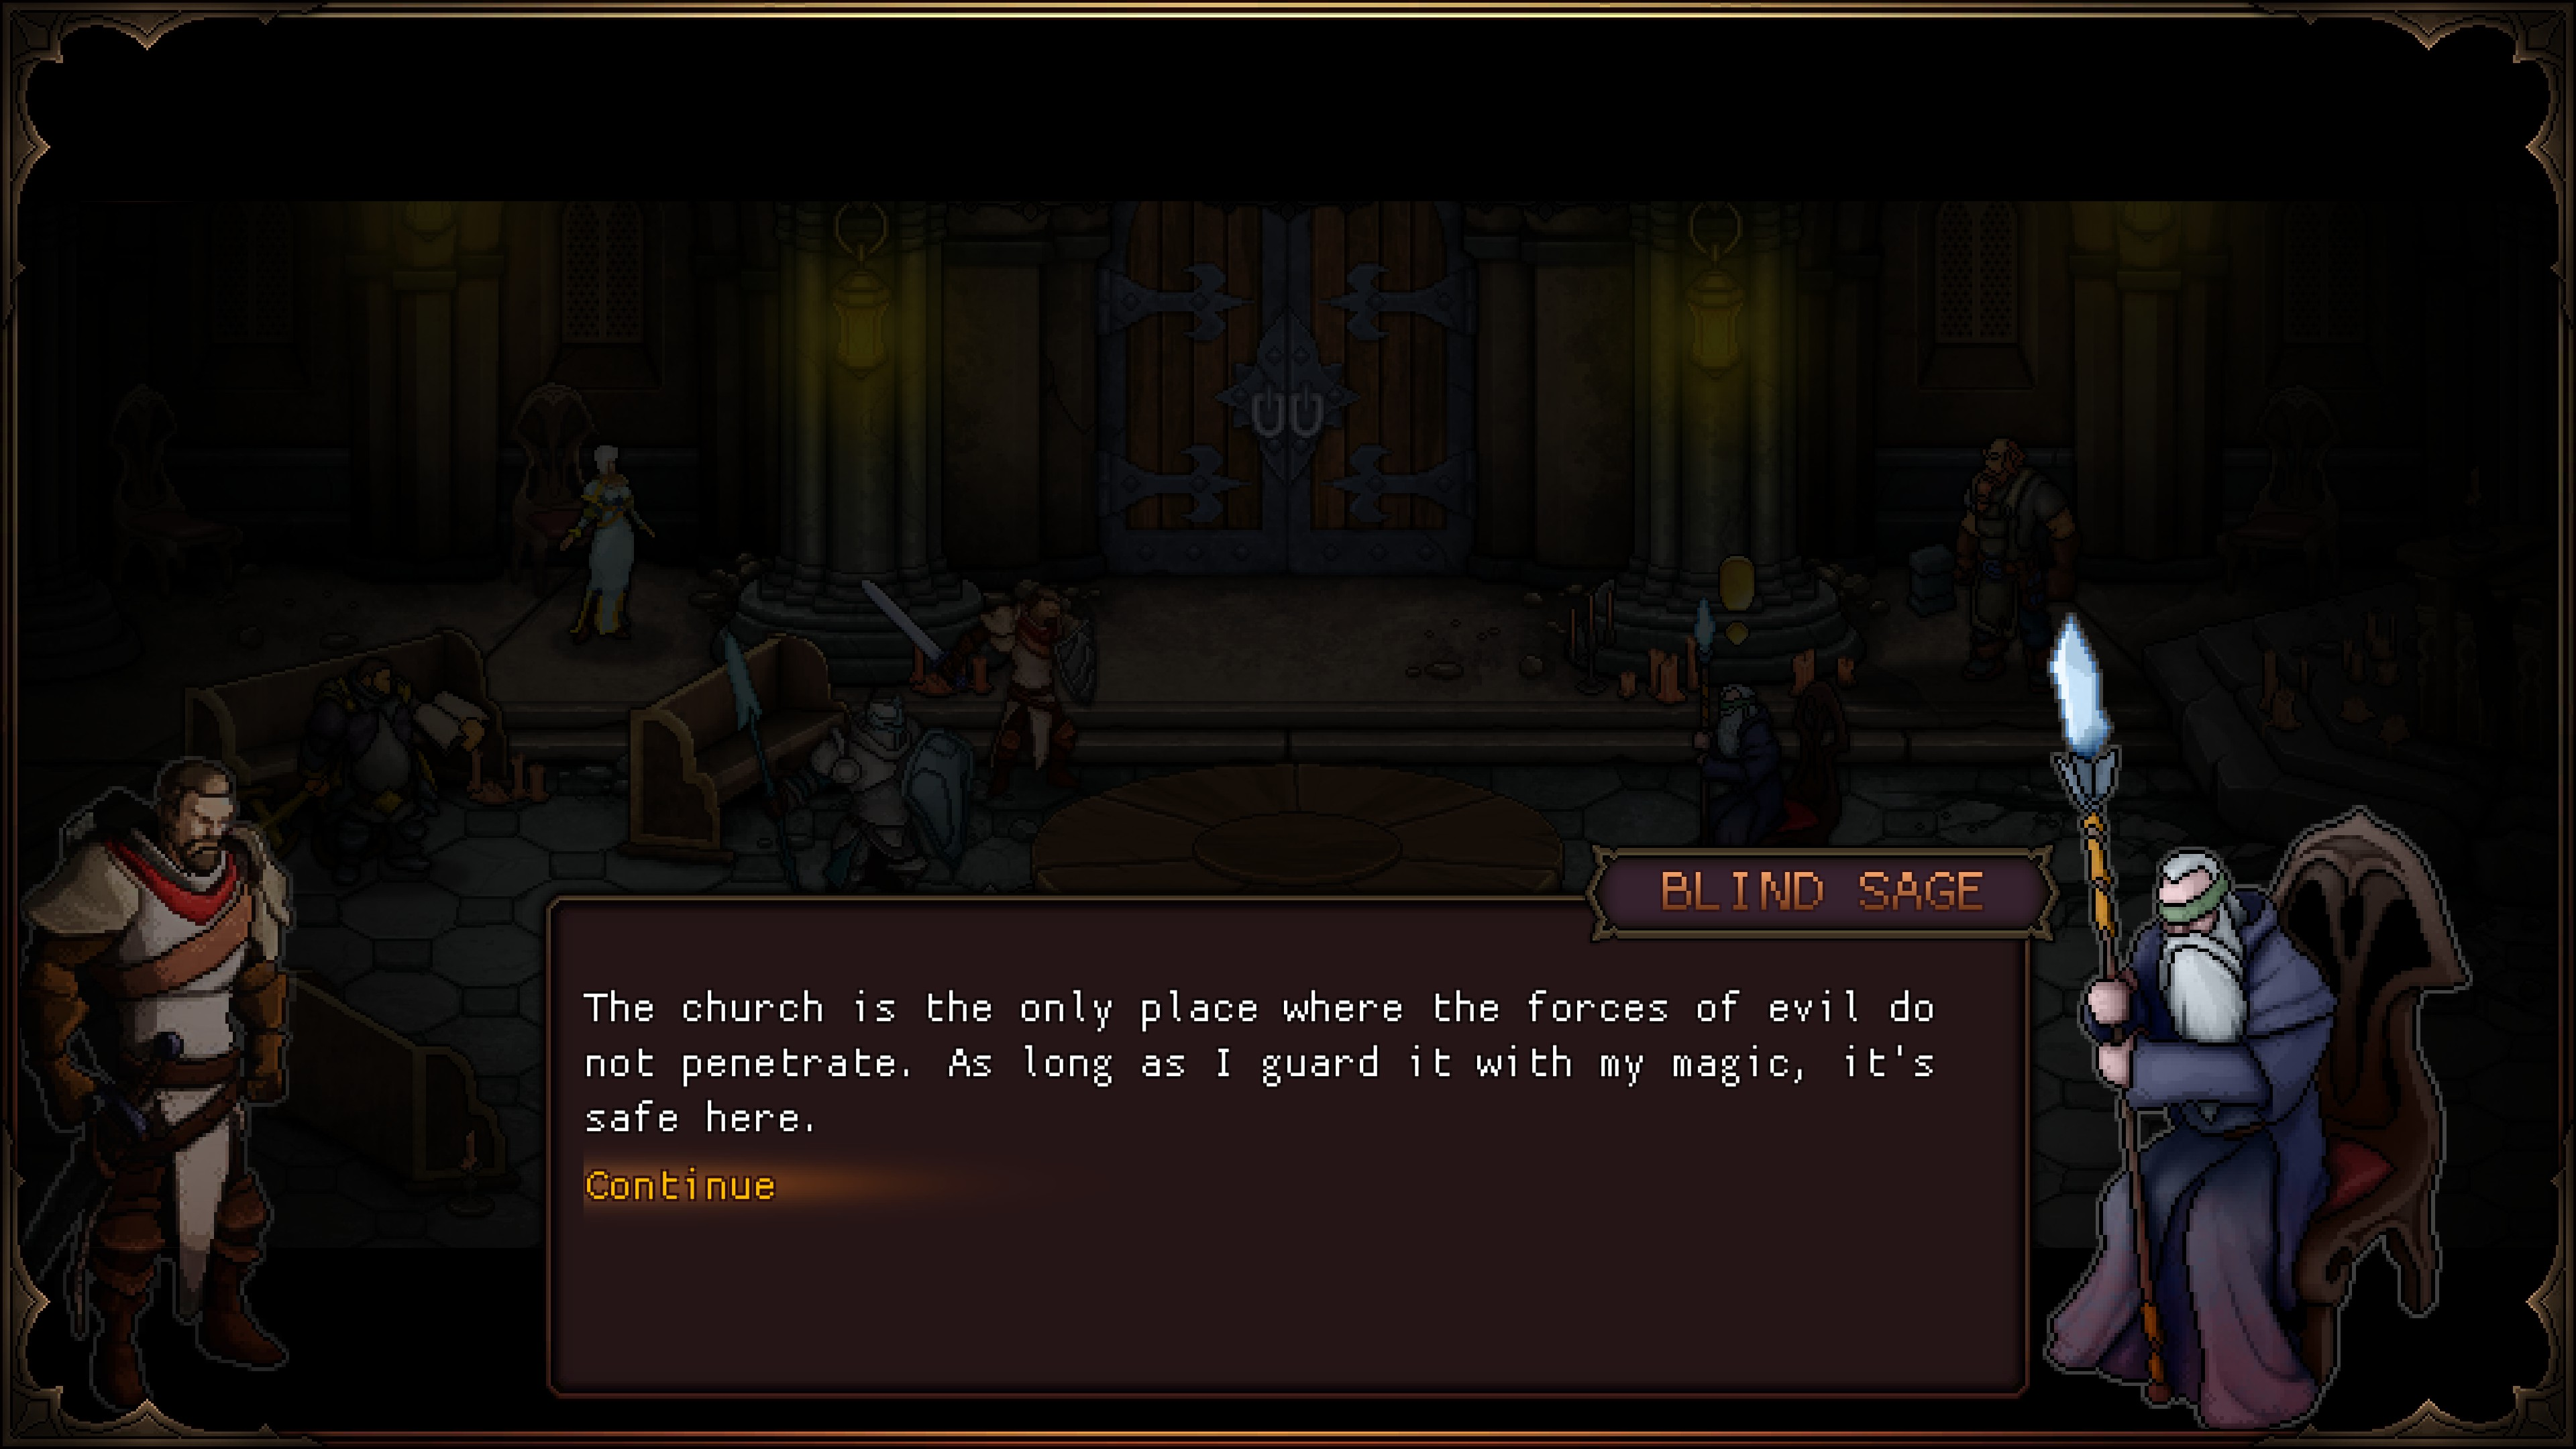 blind sage describing how he protects the church with his magic and it's the only place safe from evil forces